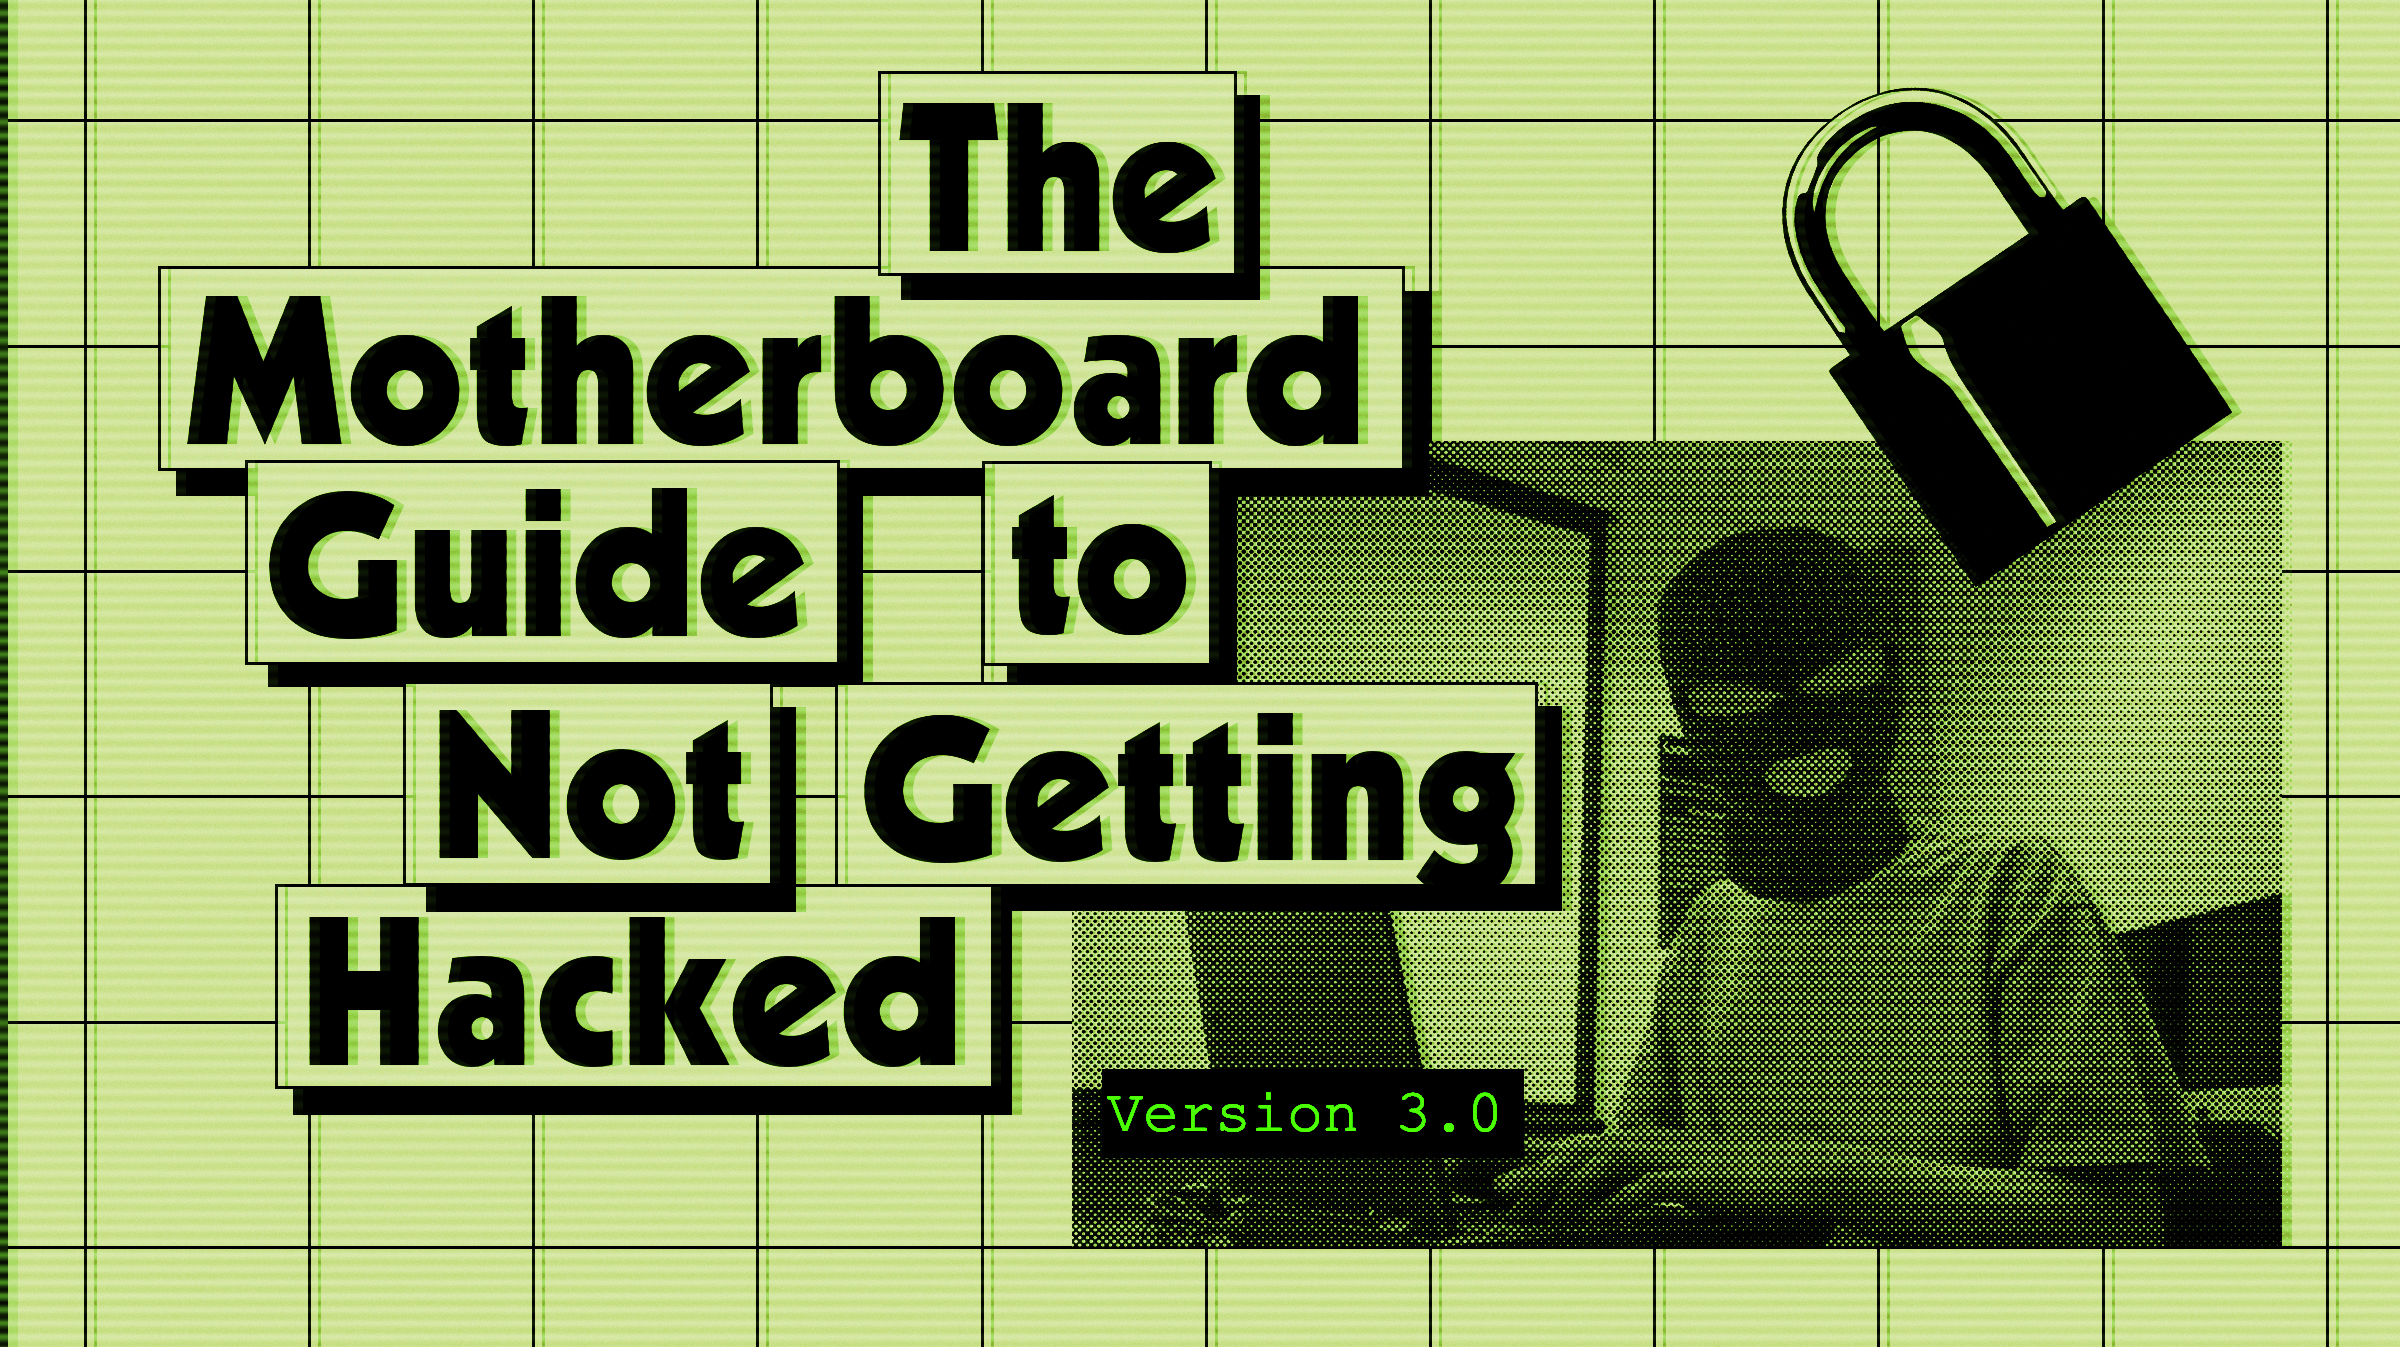 the motherboard guide to not getting hacked viceimage lia kantrowitz jason koebler